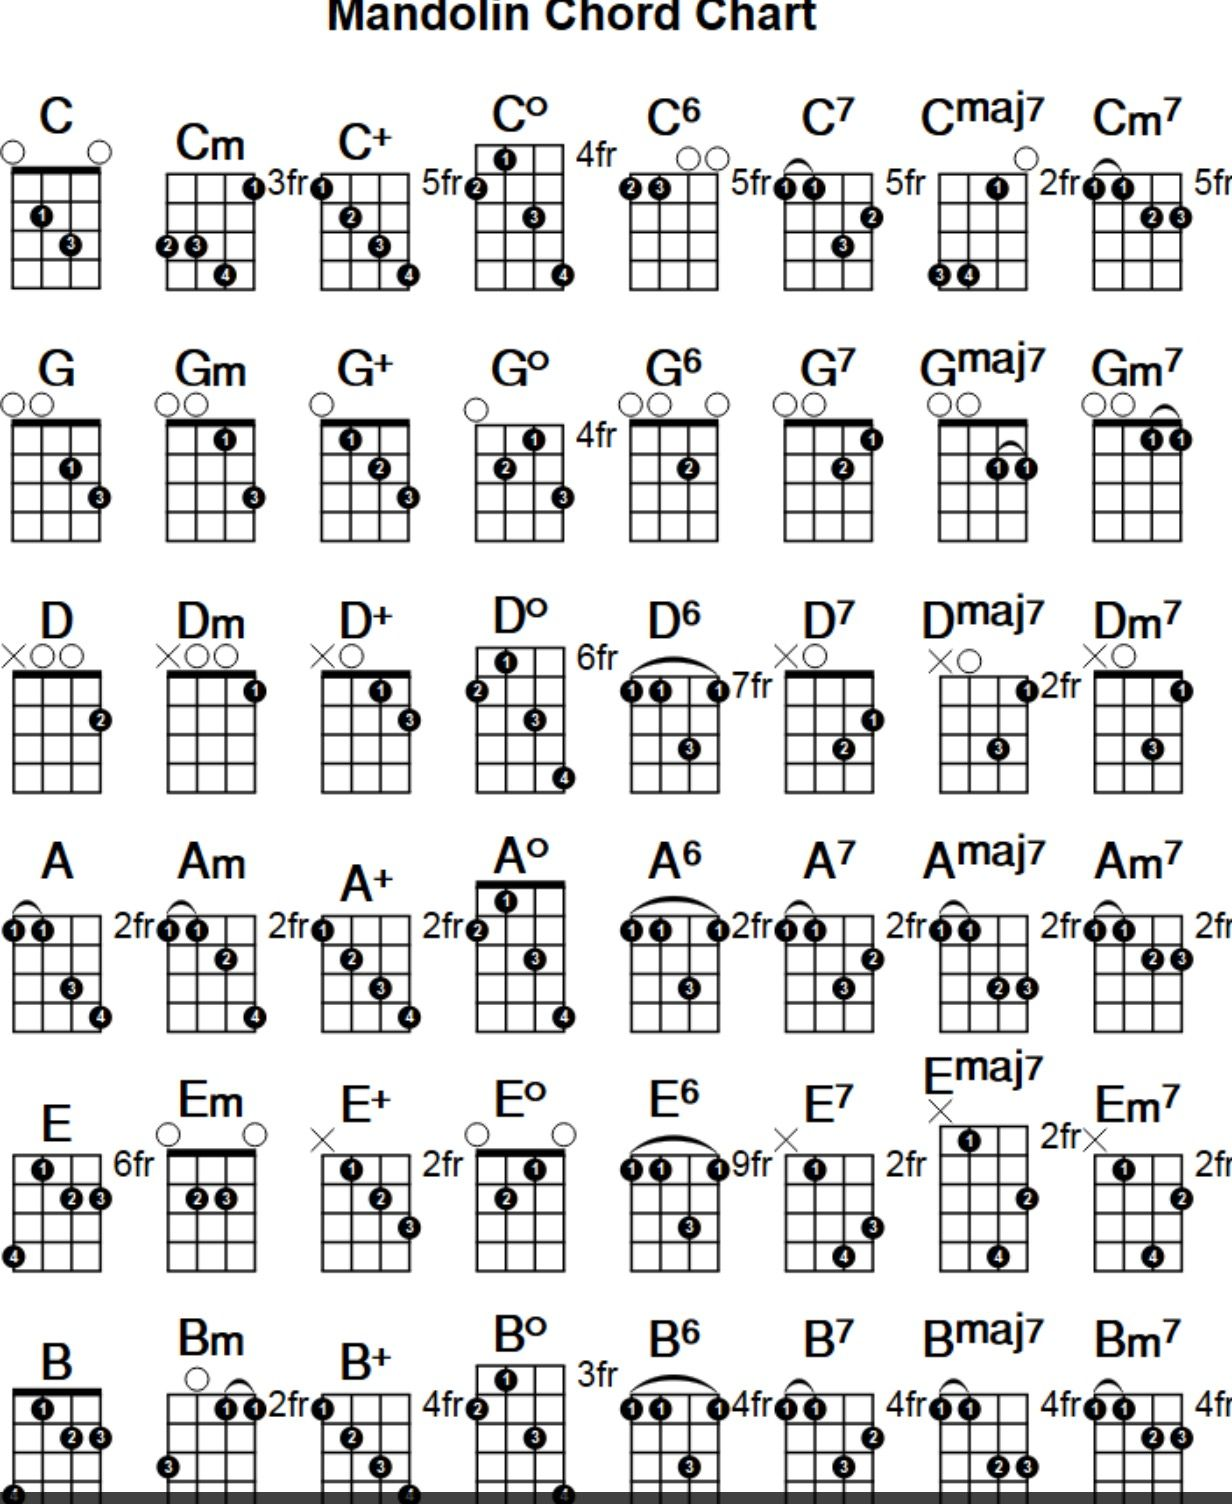 Pin By Sjfn Andersdttir On Instrument Chords In 2018 Pinterest